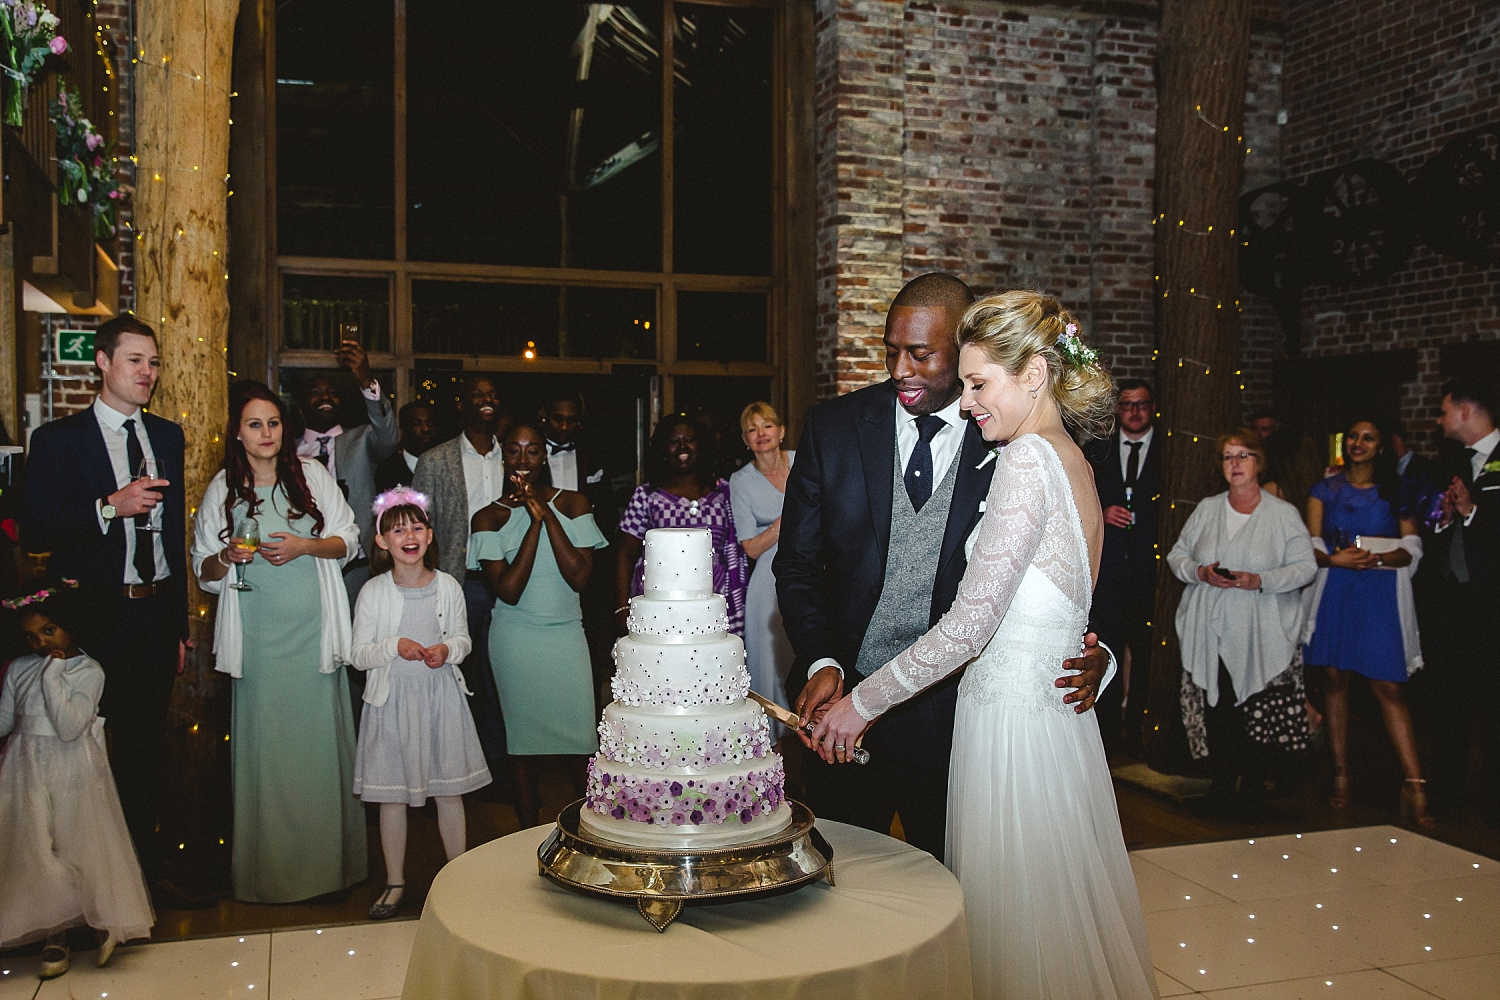 Gaynes Park Wedding Photographer - Cake Cutting on the Dancefloor